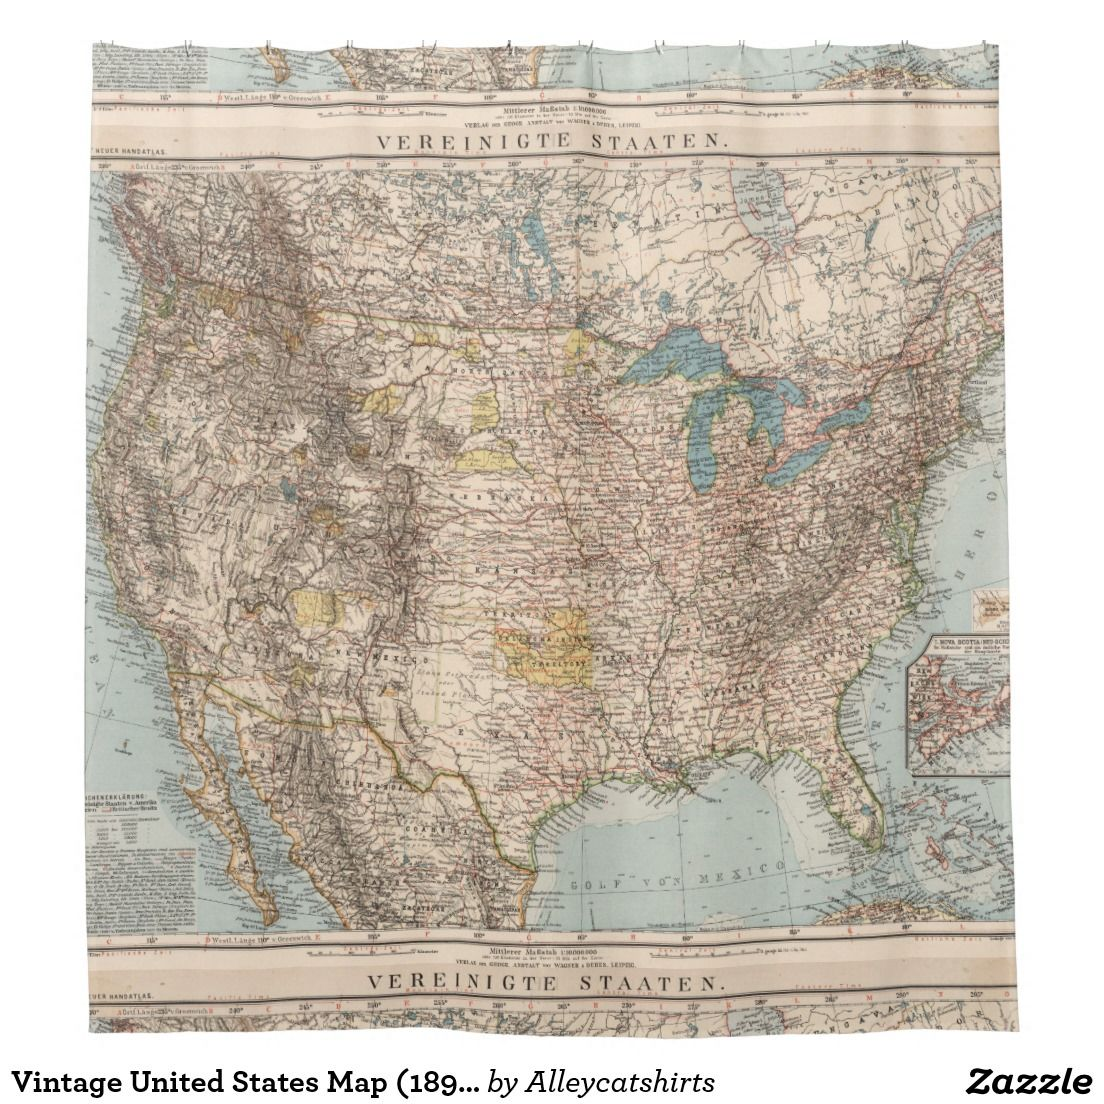 Vintage United States Map (1898) Shower Curtain | Zazzle.com ... on united states map high resolution, united states map tumbler, united states map pillow, united states map large wall, united states map quilt, united states map fabric, united states map rug, united states map clock, united states military armed forces, united states map art, united states map placemat, united states map food, united states map comforter, united states map with rivers, united states map wallpaper, united states map with landmarks, united states map wall mural, united states map zoom in, united states map rhode island, united states map decor,